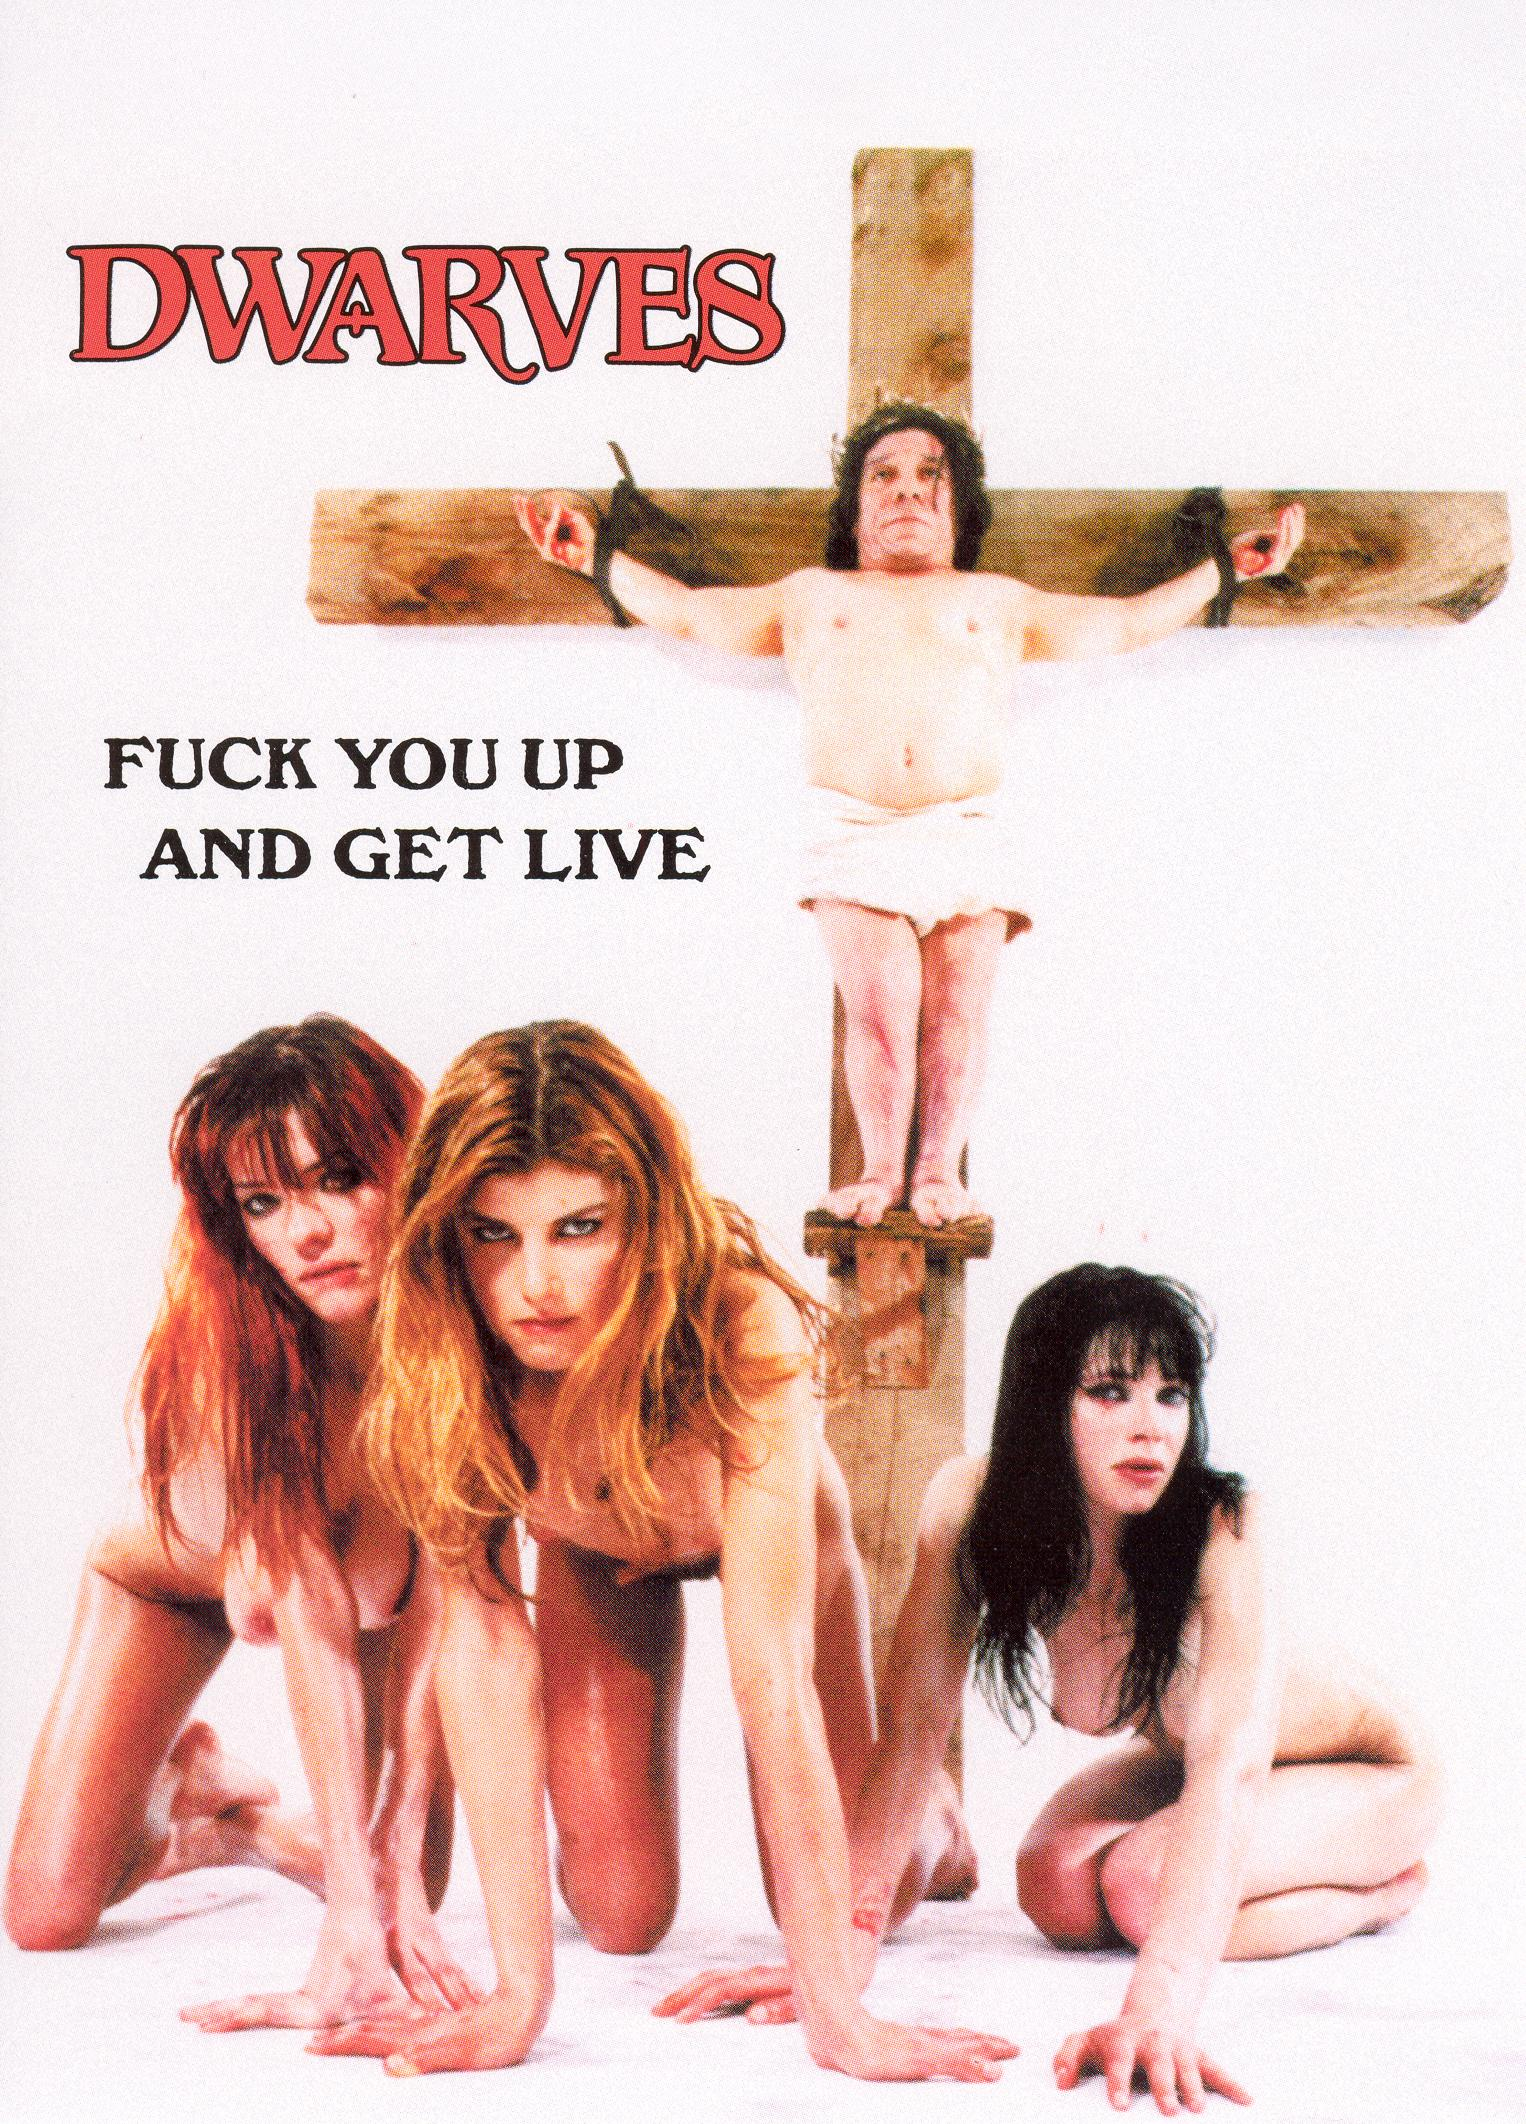 The Dwarves: F*ck You Up and Get Live